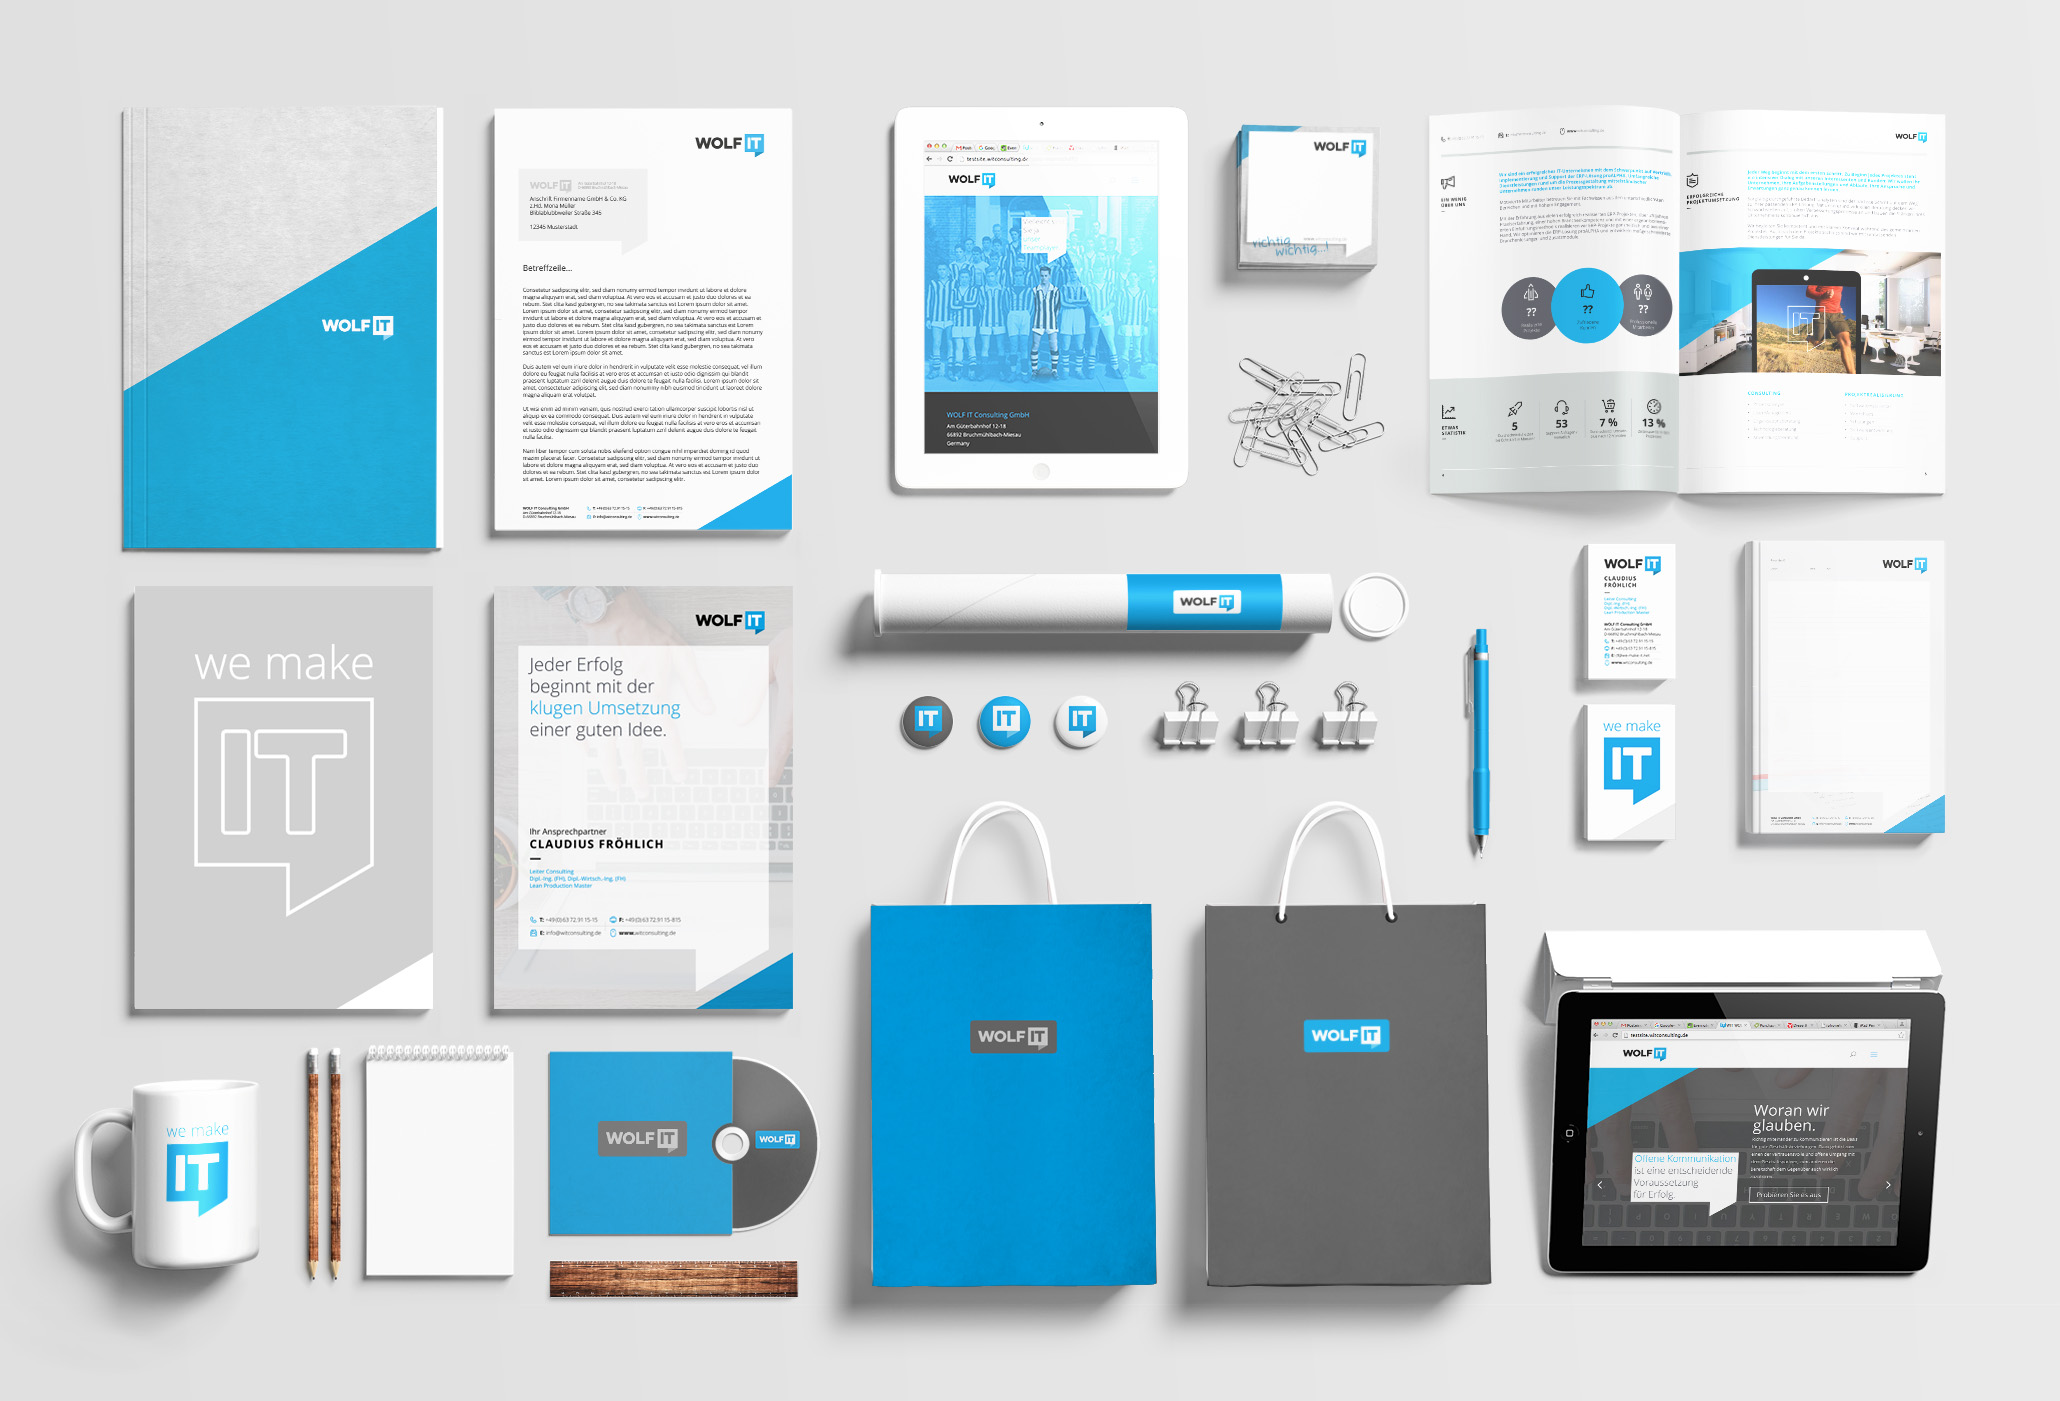 Komplette Redesign WOLF IT, Corporate Design (2)